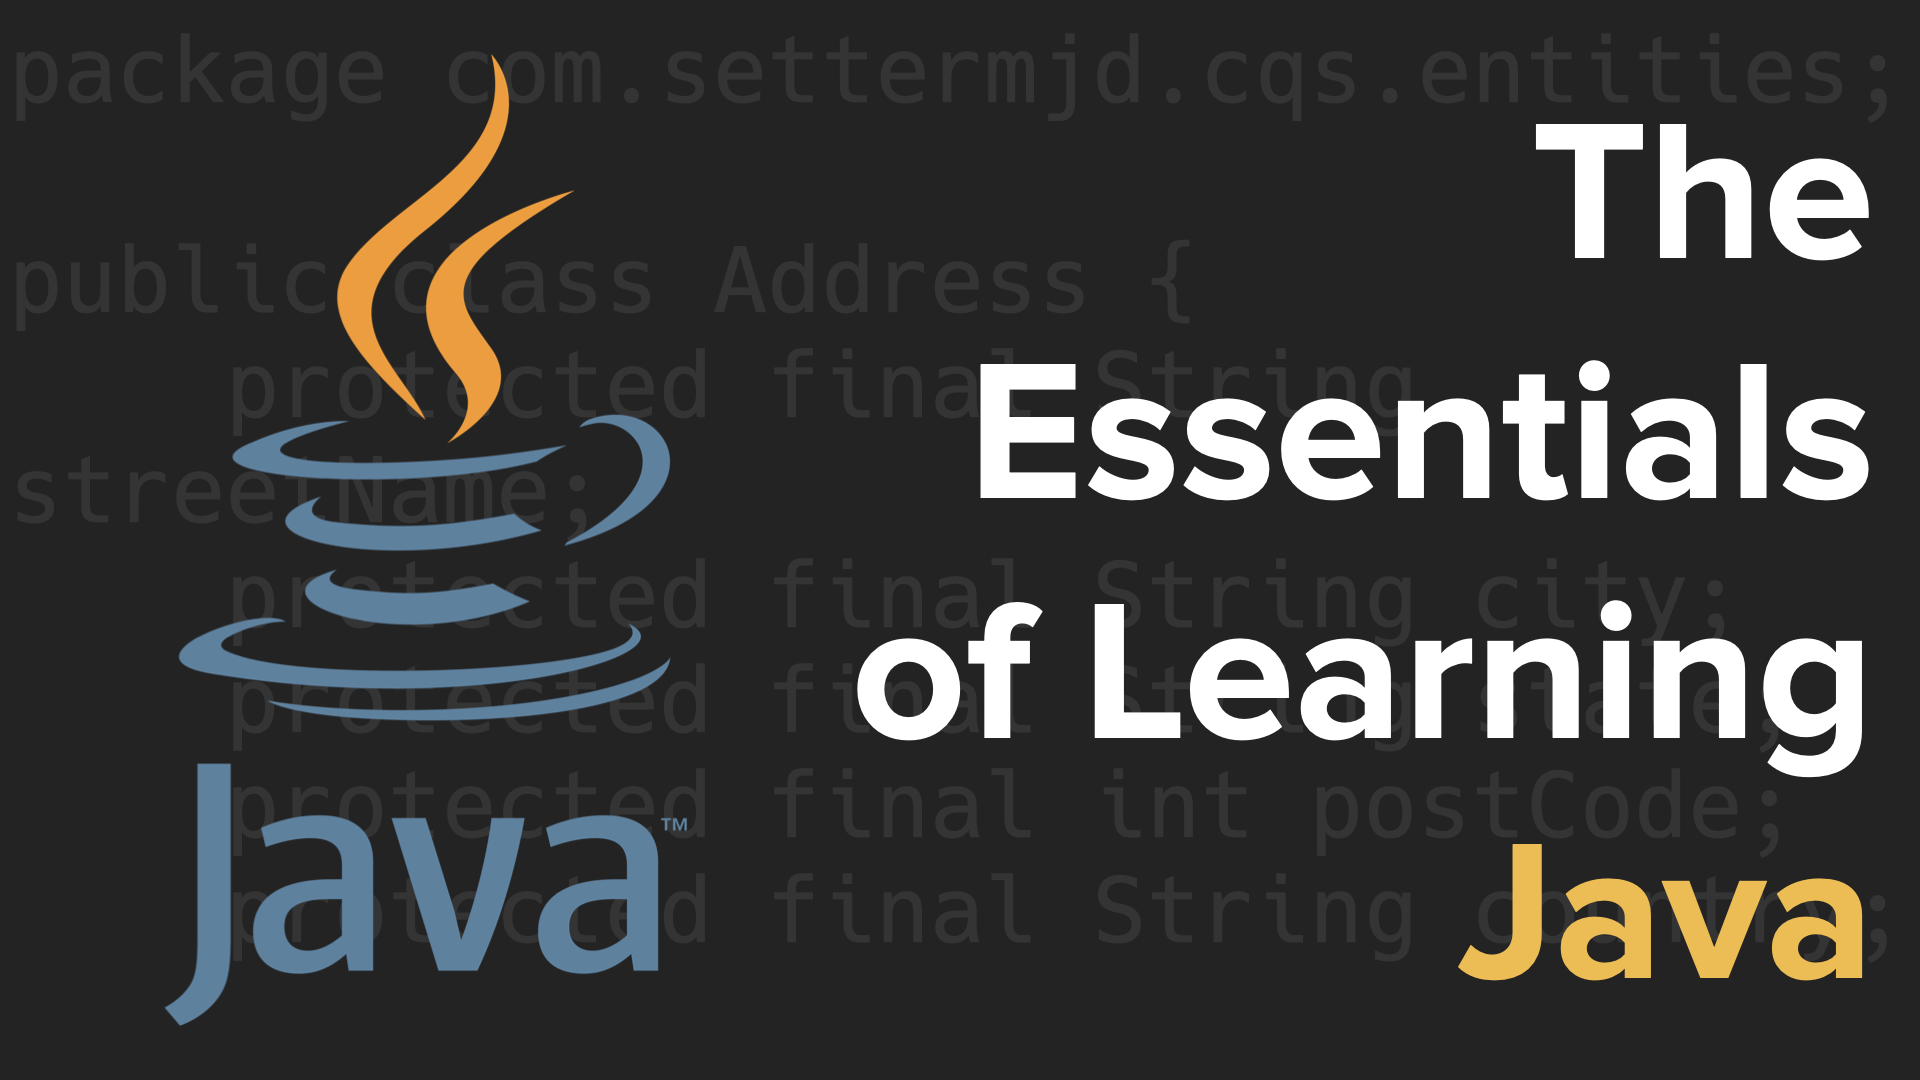 The Essentials of Learning Java